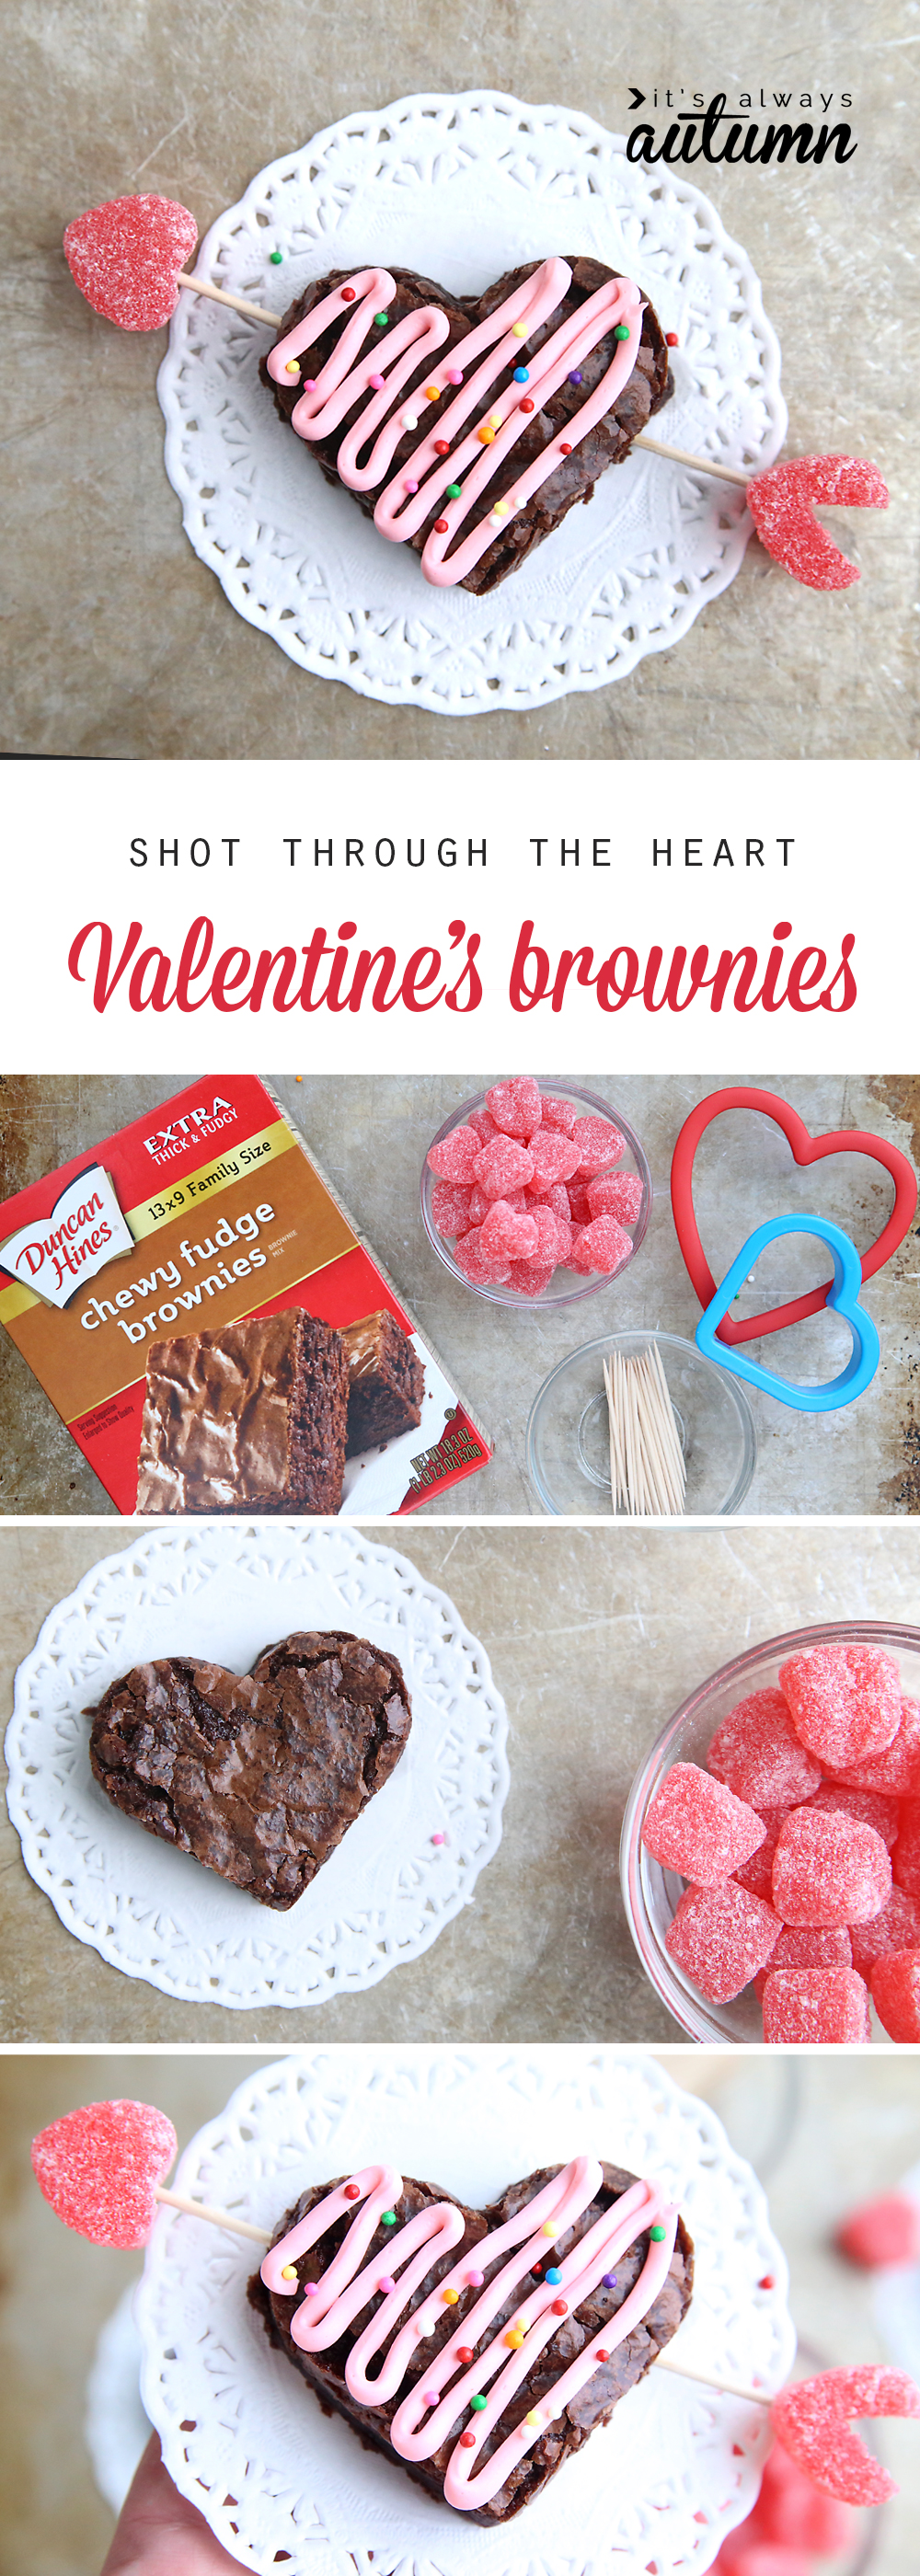 Brownies cut into heart shape, with jelly hearts and toothpicks forming an arrow through the brownie heart